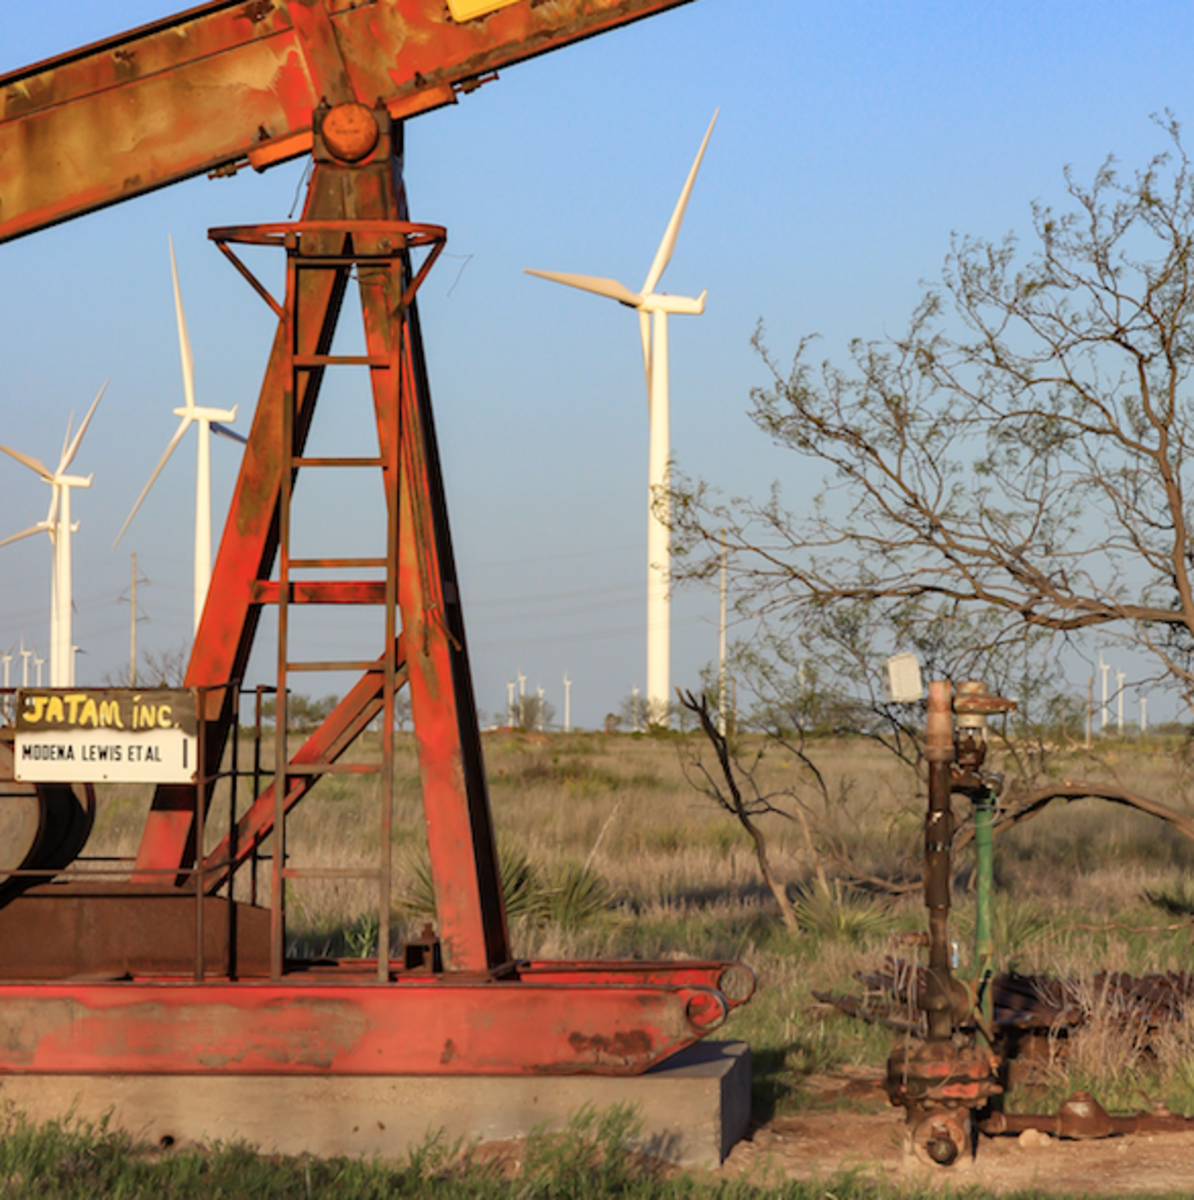 Non producing oil wells, such as this one, may be able to converted into low temperature geothermal wells that power turbines that generate electricity.